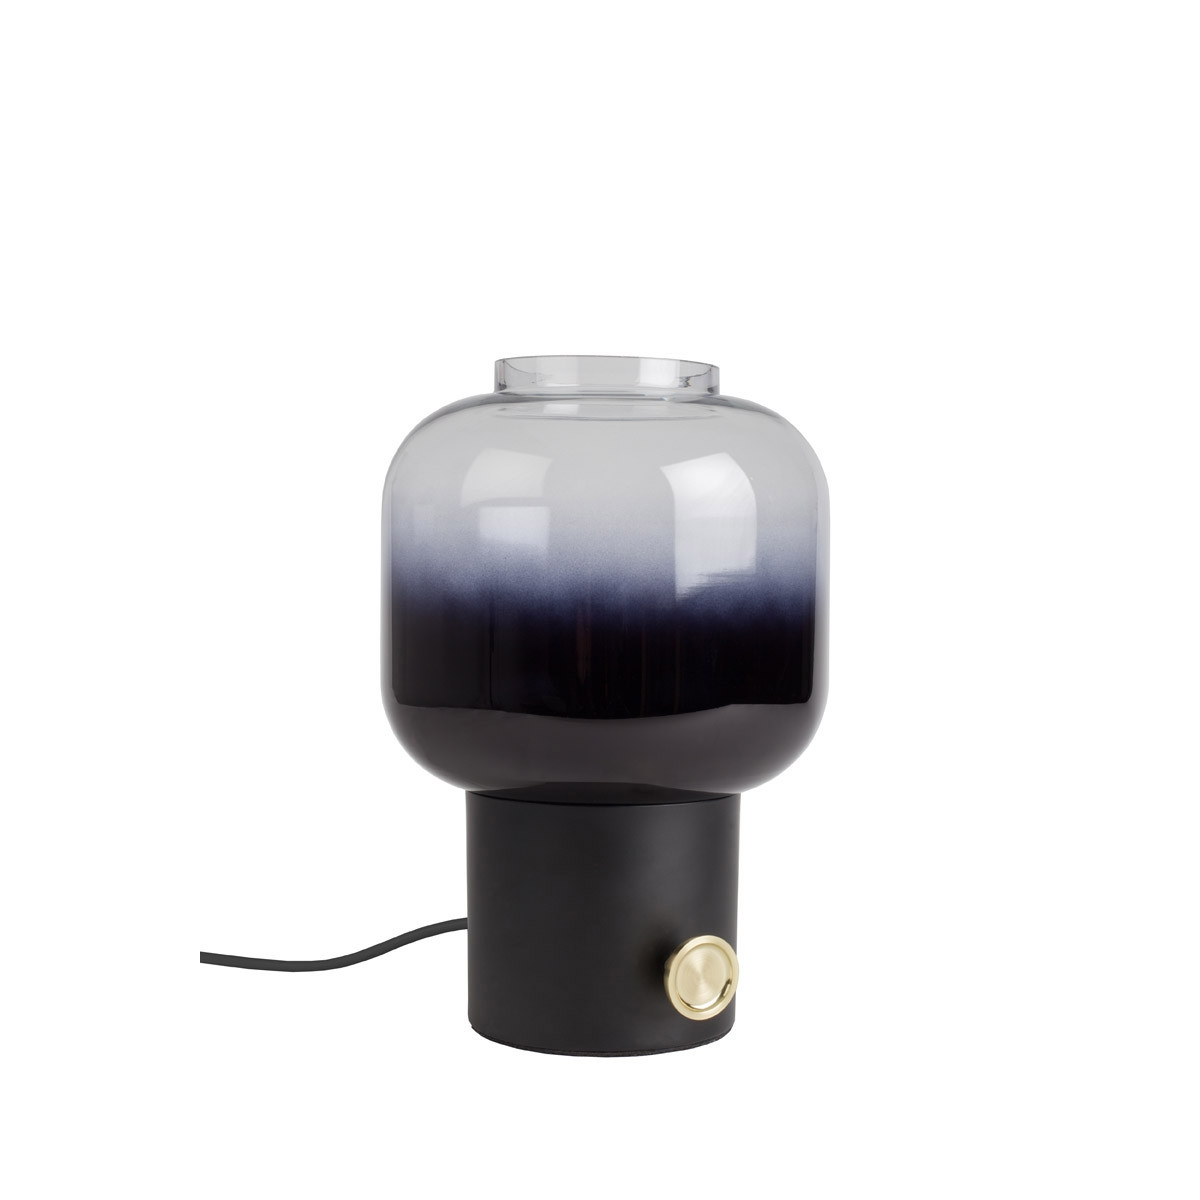 Zuiver Moody Ombre Glass Table Lamp - Black